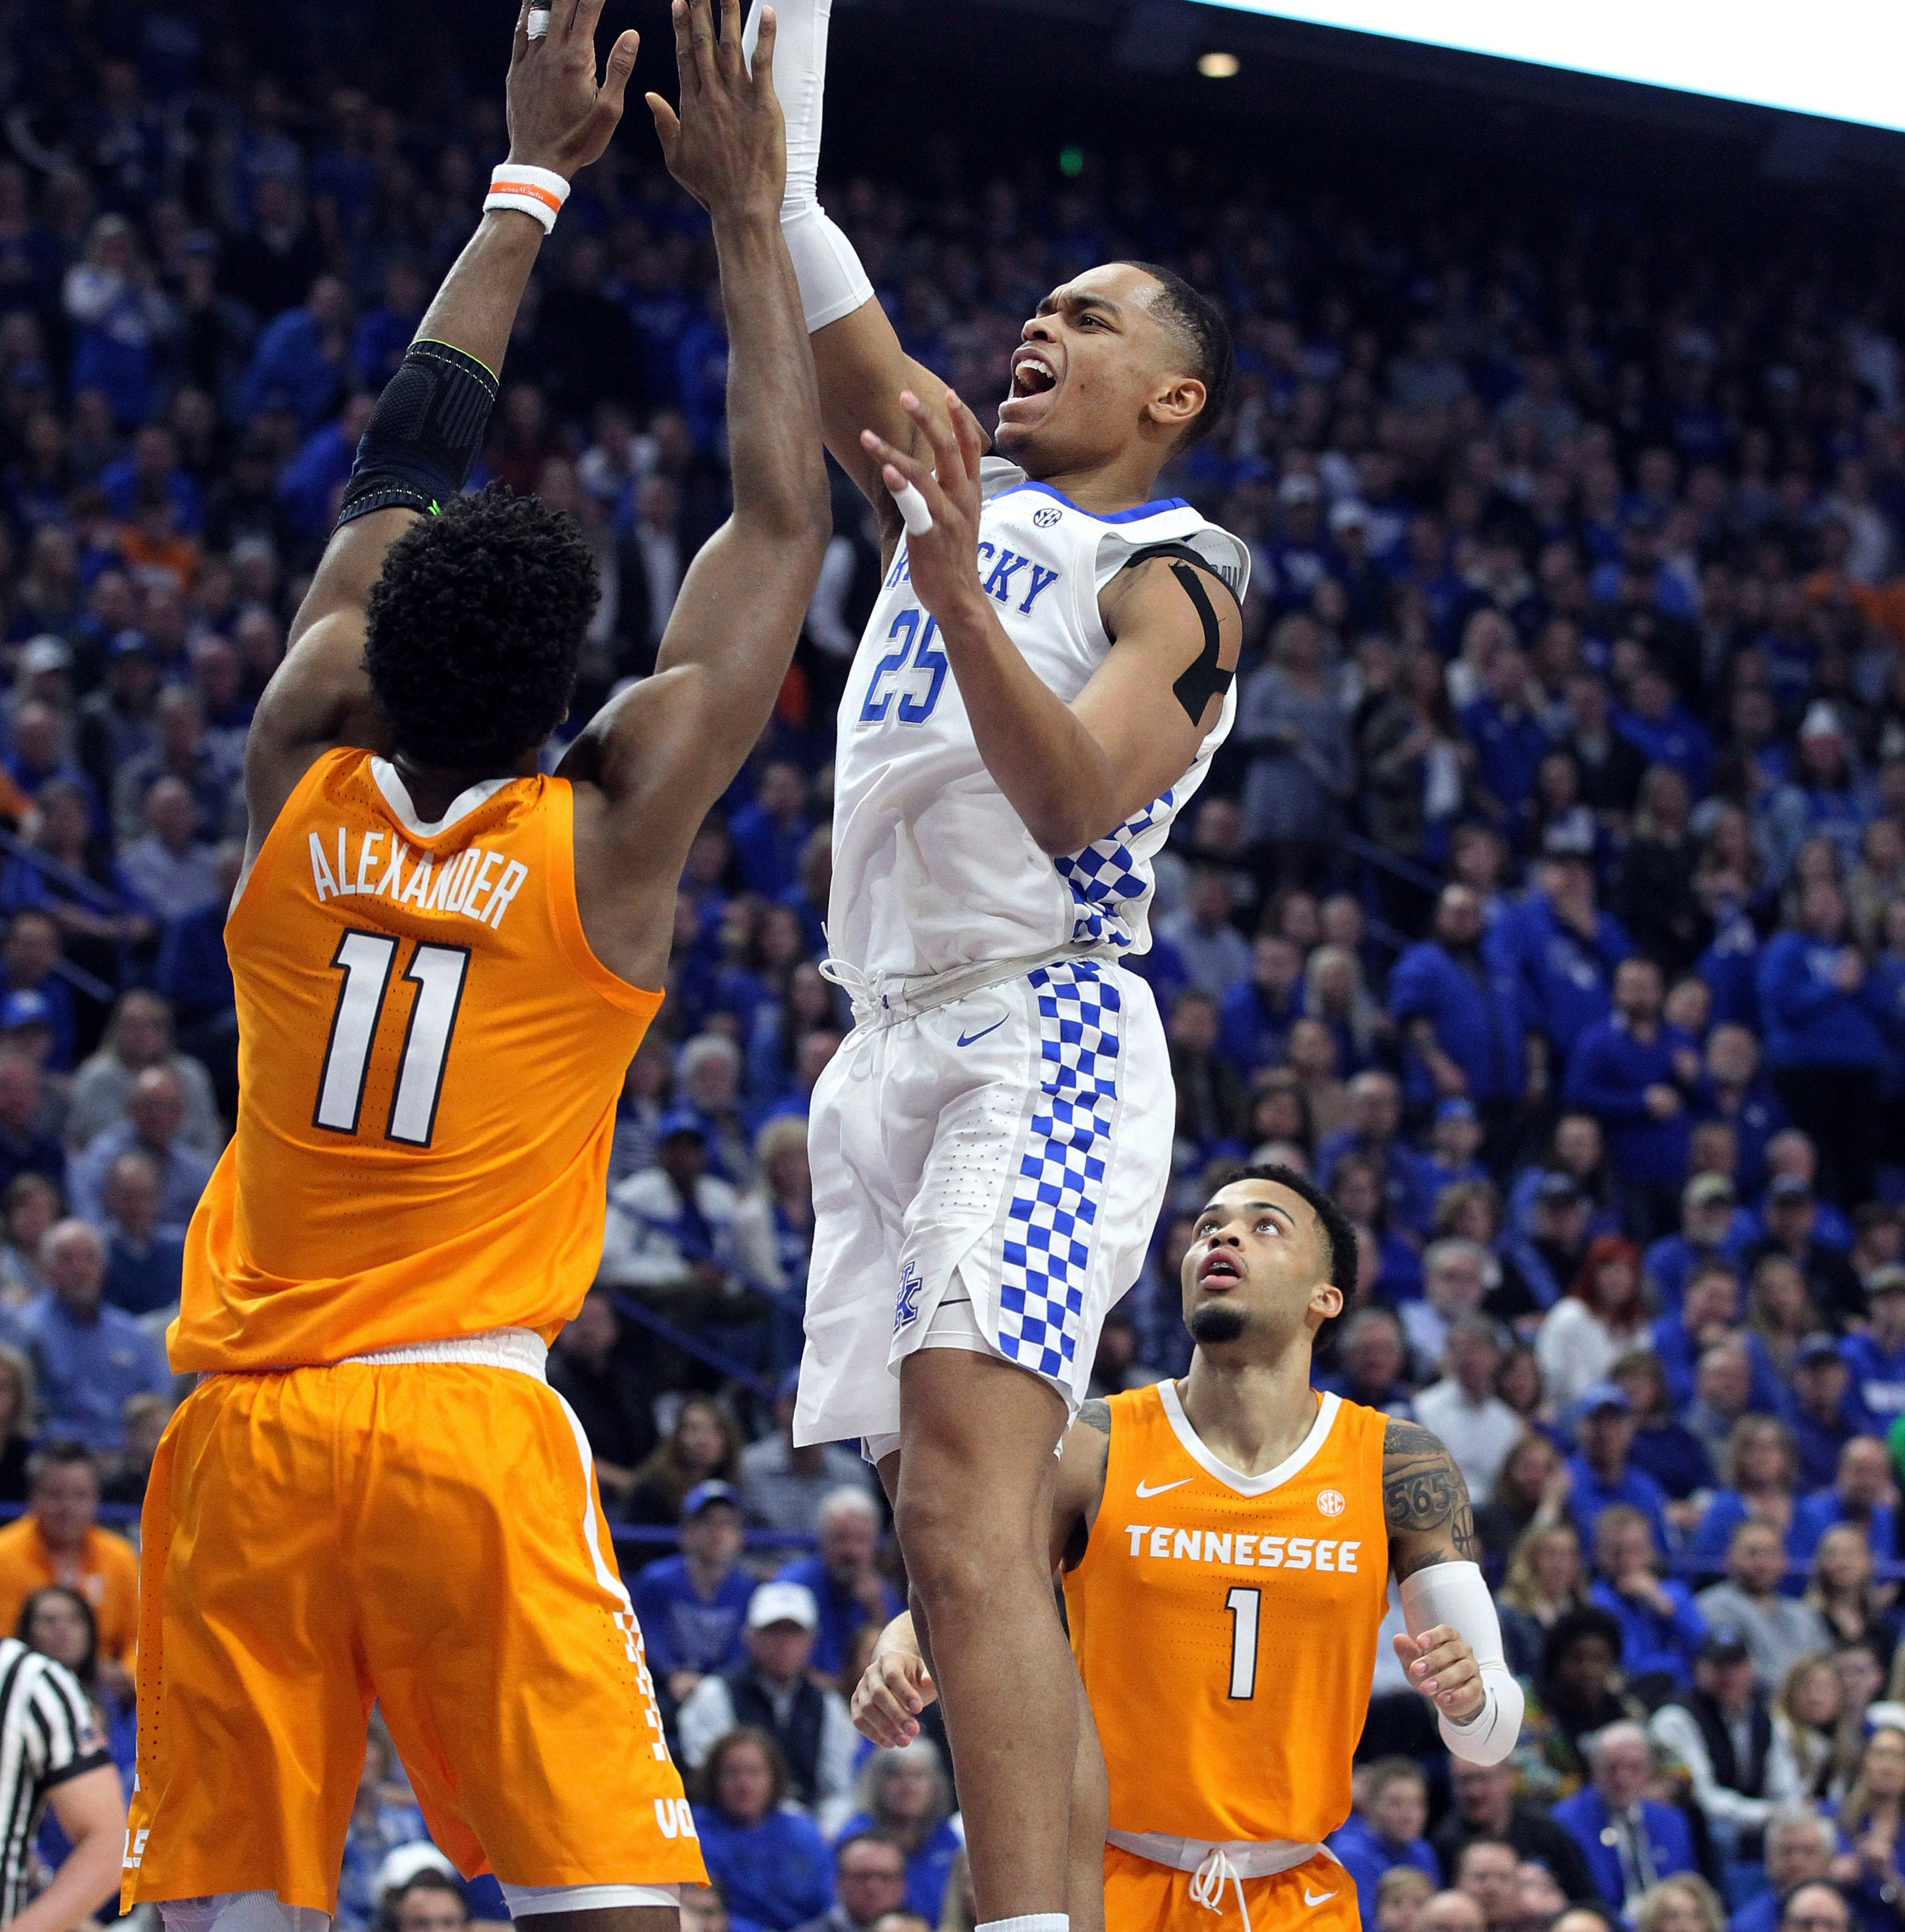 Tennessee basketball will face same hurdles in LSU as it did with Kentucky